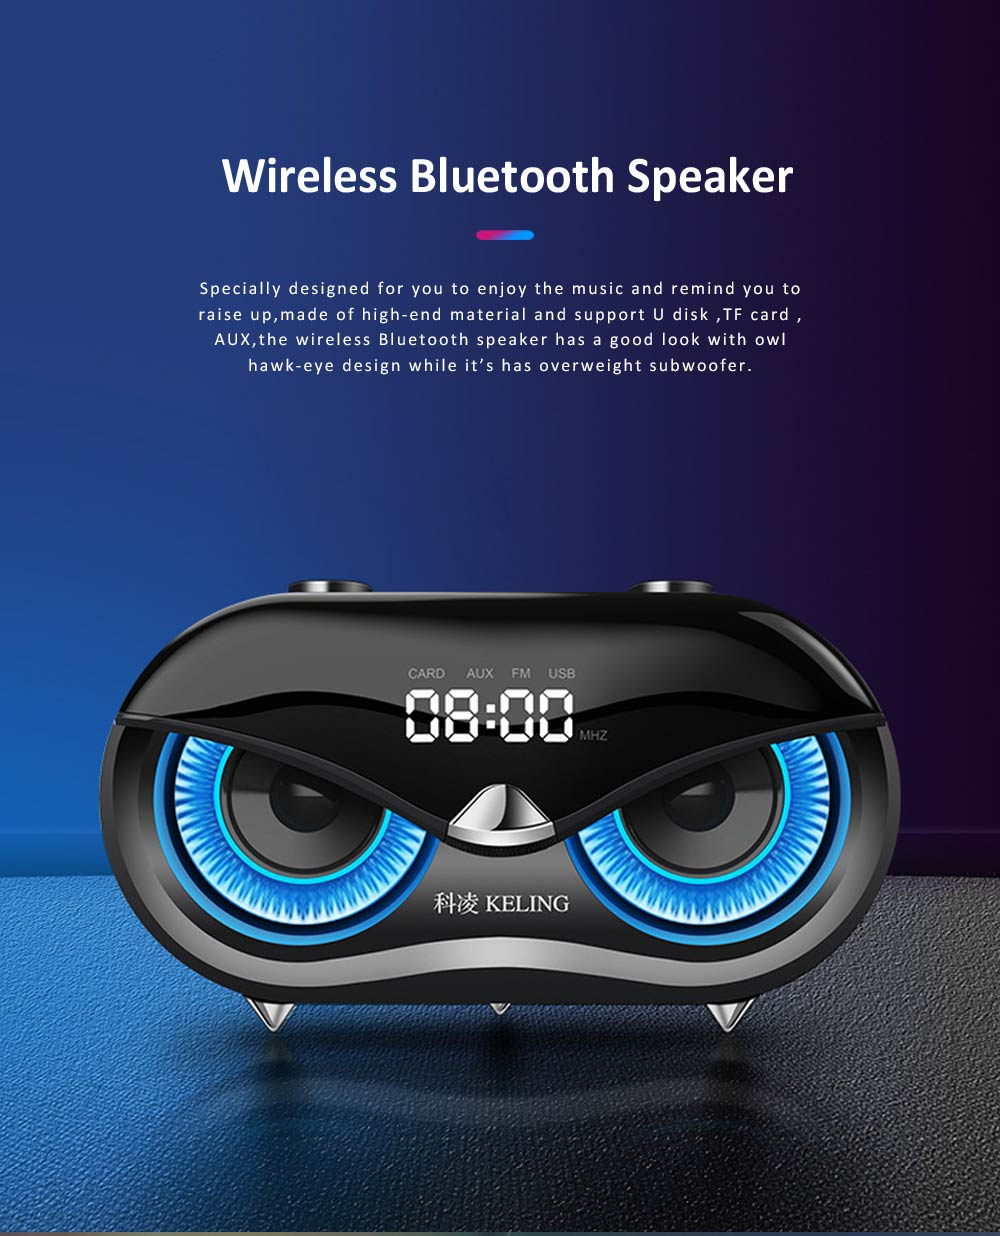 KELING K5 Wireless Bluetooth Speaker, Portable Desktop Home Speaker with Alarm Clock, FM Free Calls Subwoofer, Bionic Owl Hawk-eye Design Audio for iPhone, iPad 0